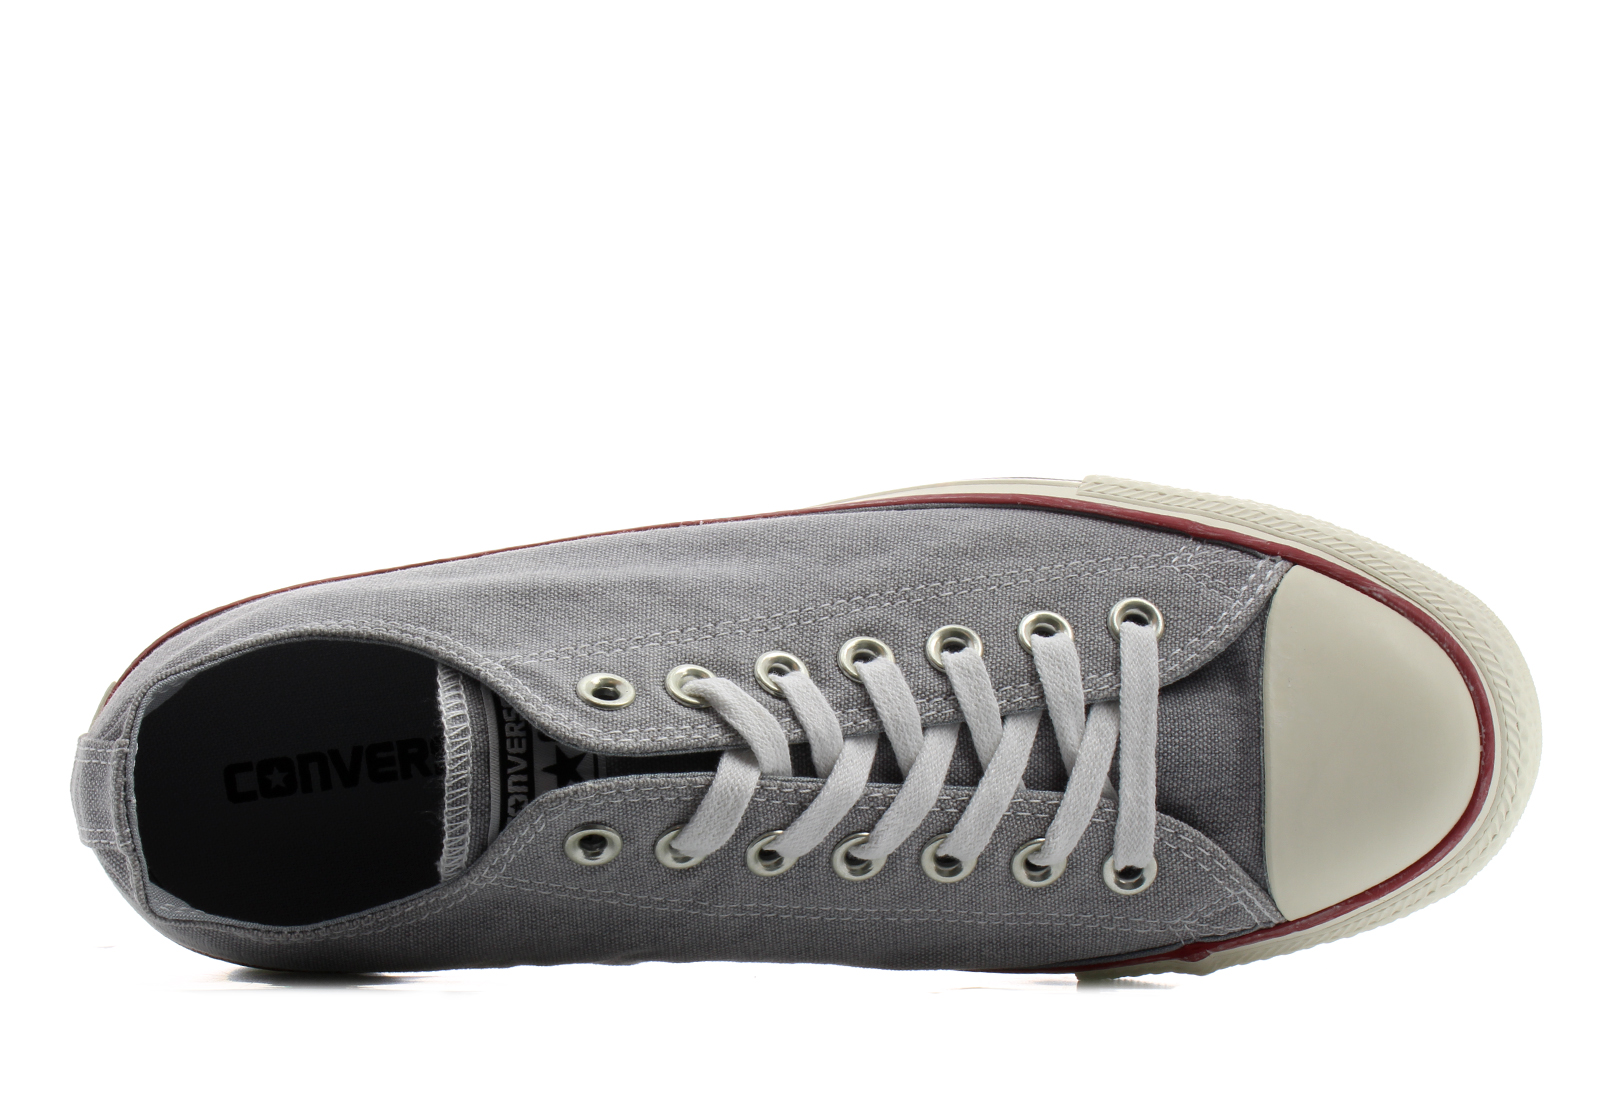 c152acab2721 Converse Sneakers - Chuck Taylor All Star Distressed Ox - 159541C ...